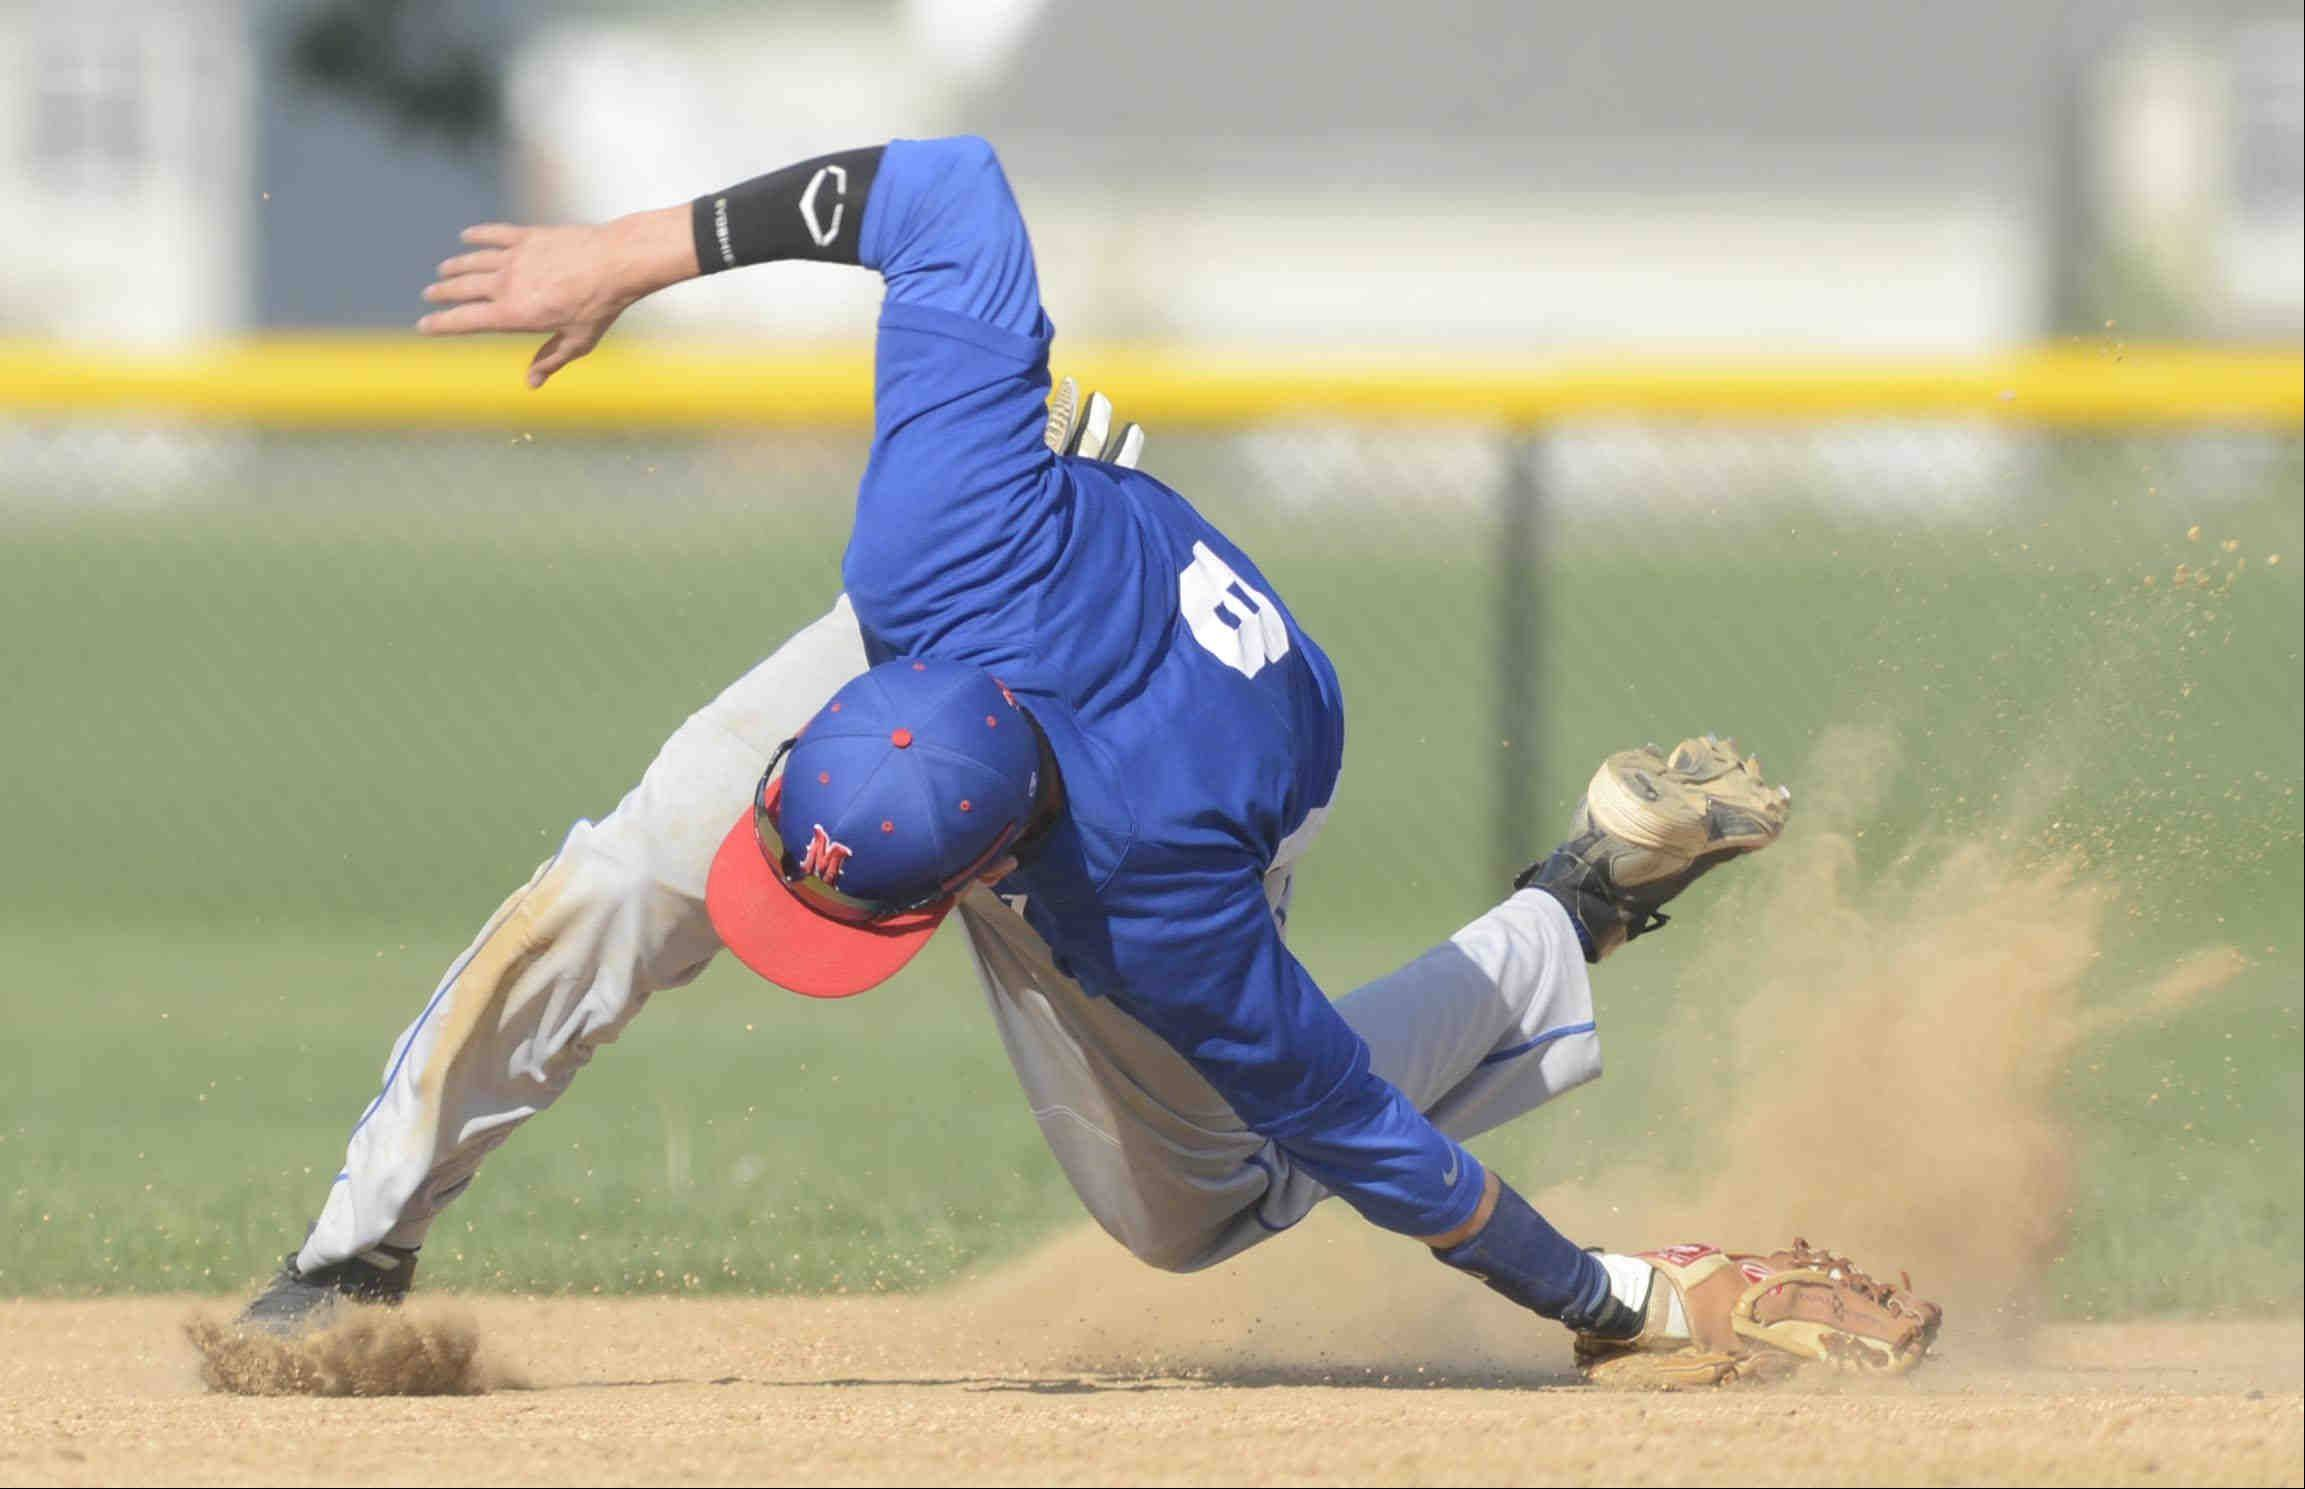 Marmion Academy shortstop Josh Meyers falls as he stops a sharp ground ball by West Aurora's Adam Lipscomb in the second inning Monday in Aurora. he was unable to make a play, but stopped a run from scoring.